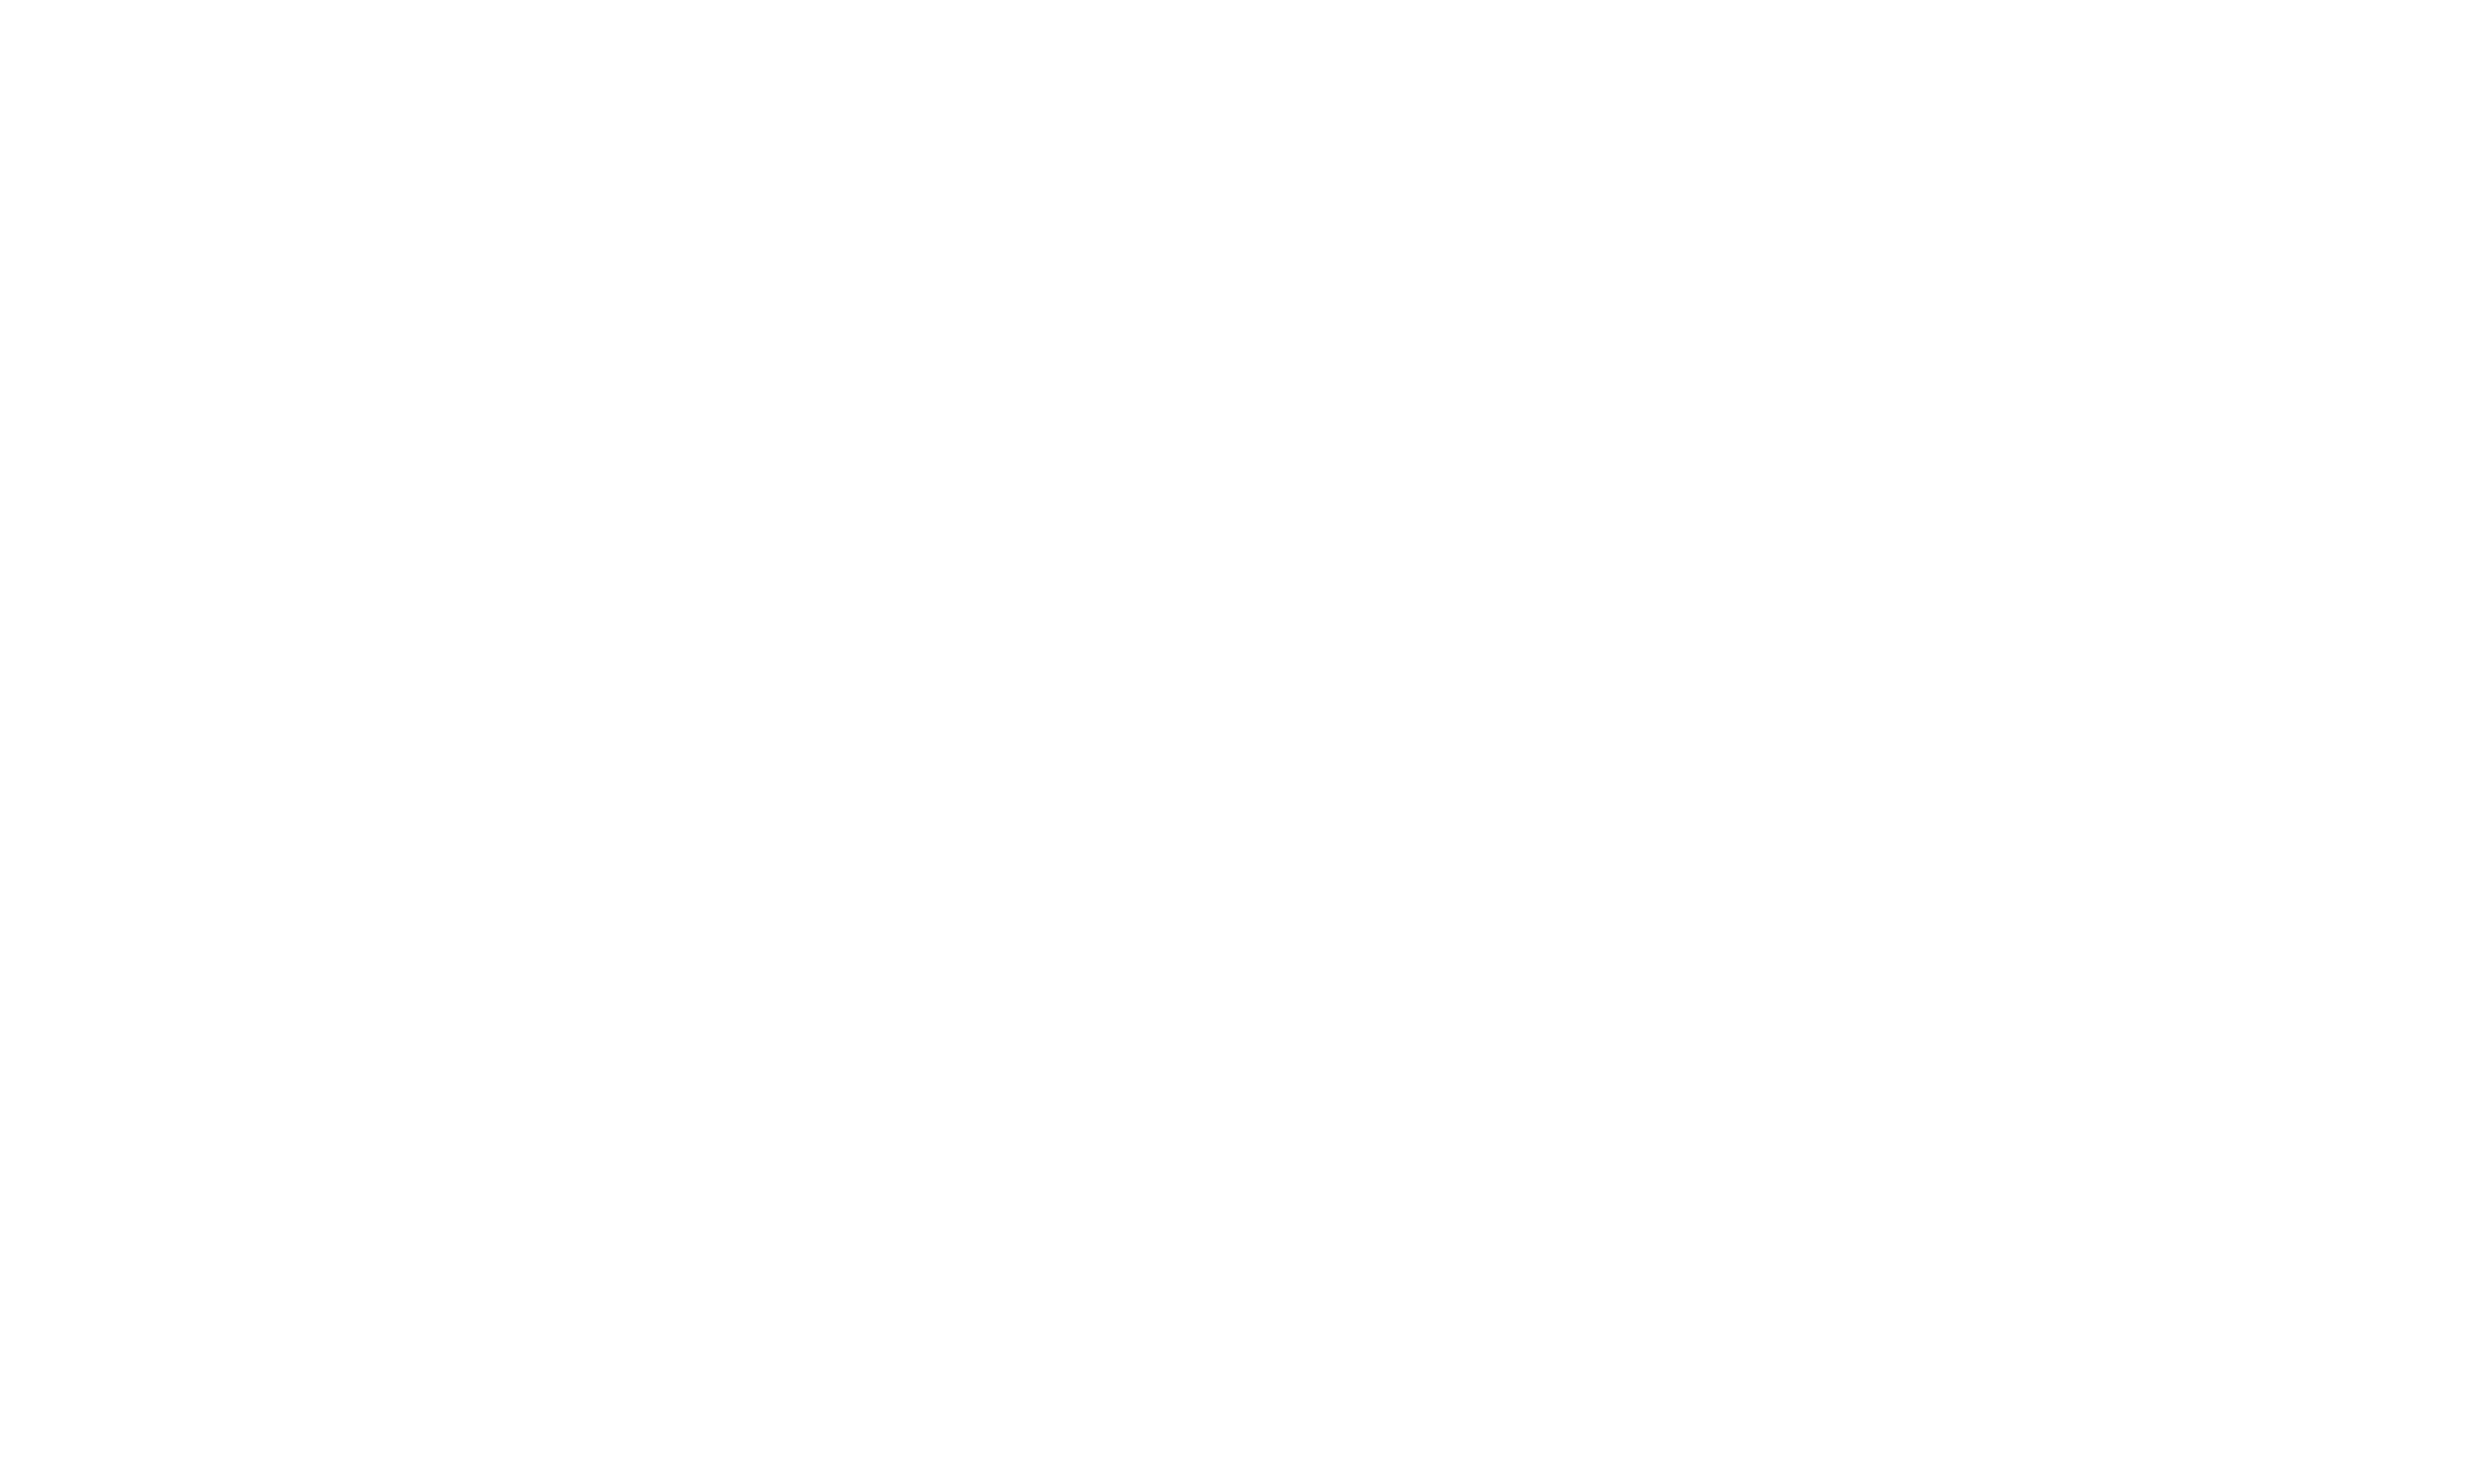 Toulouse Athlete Factory